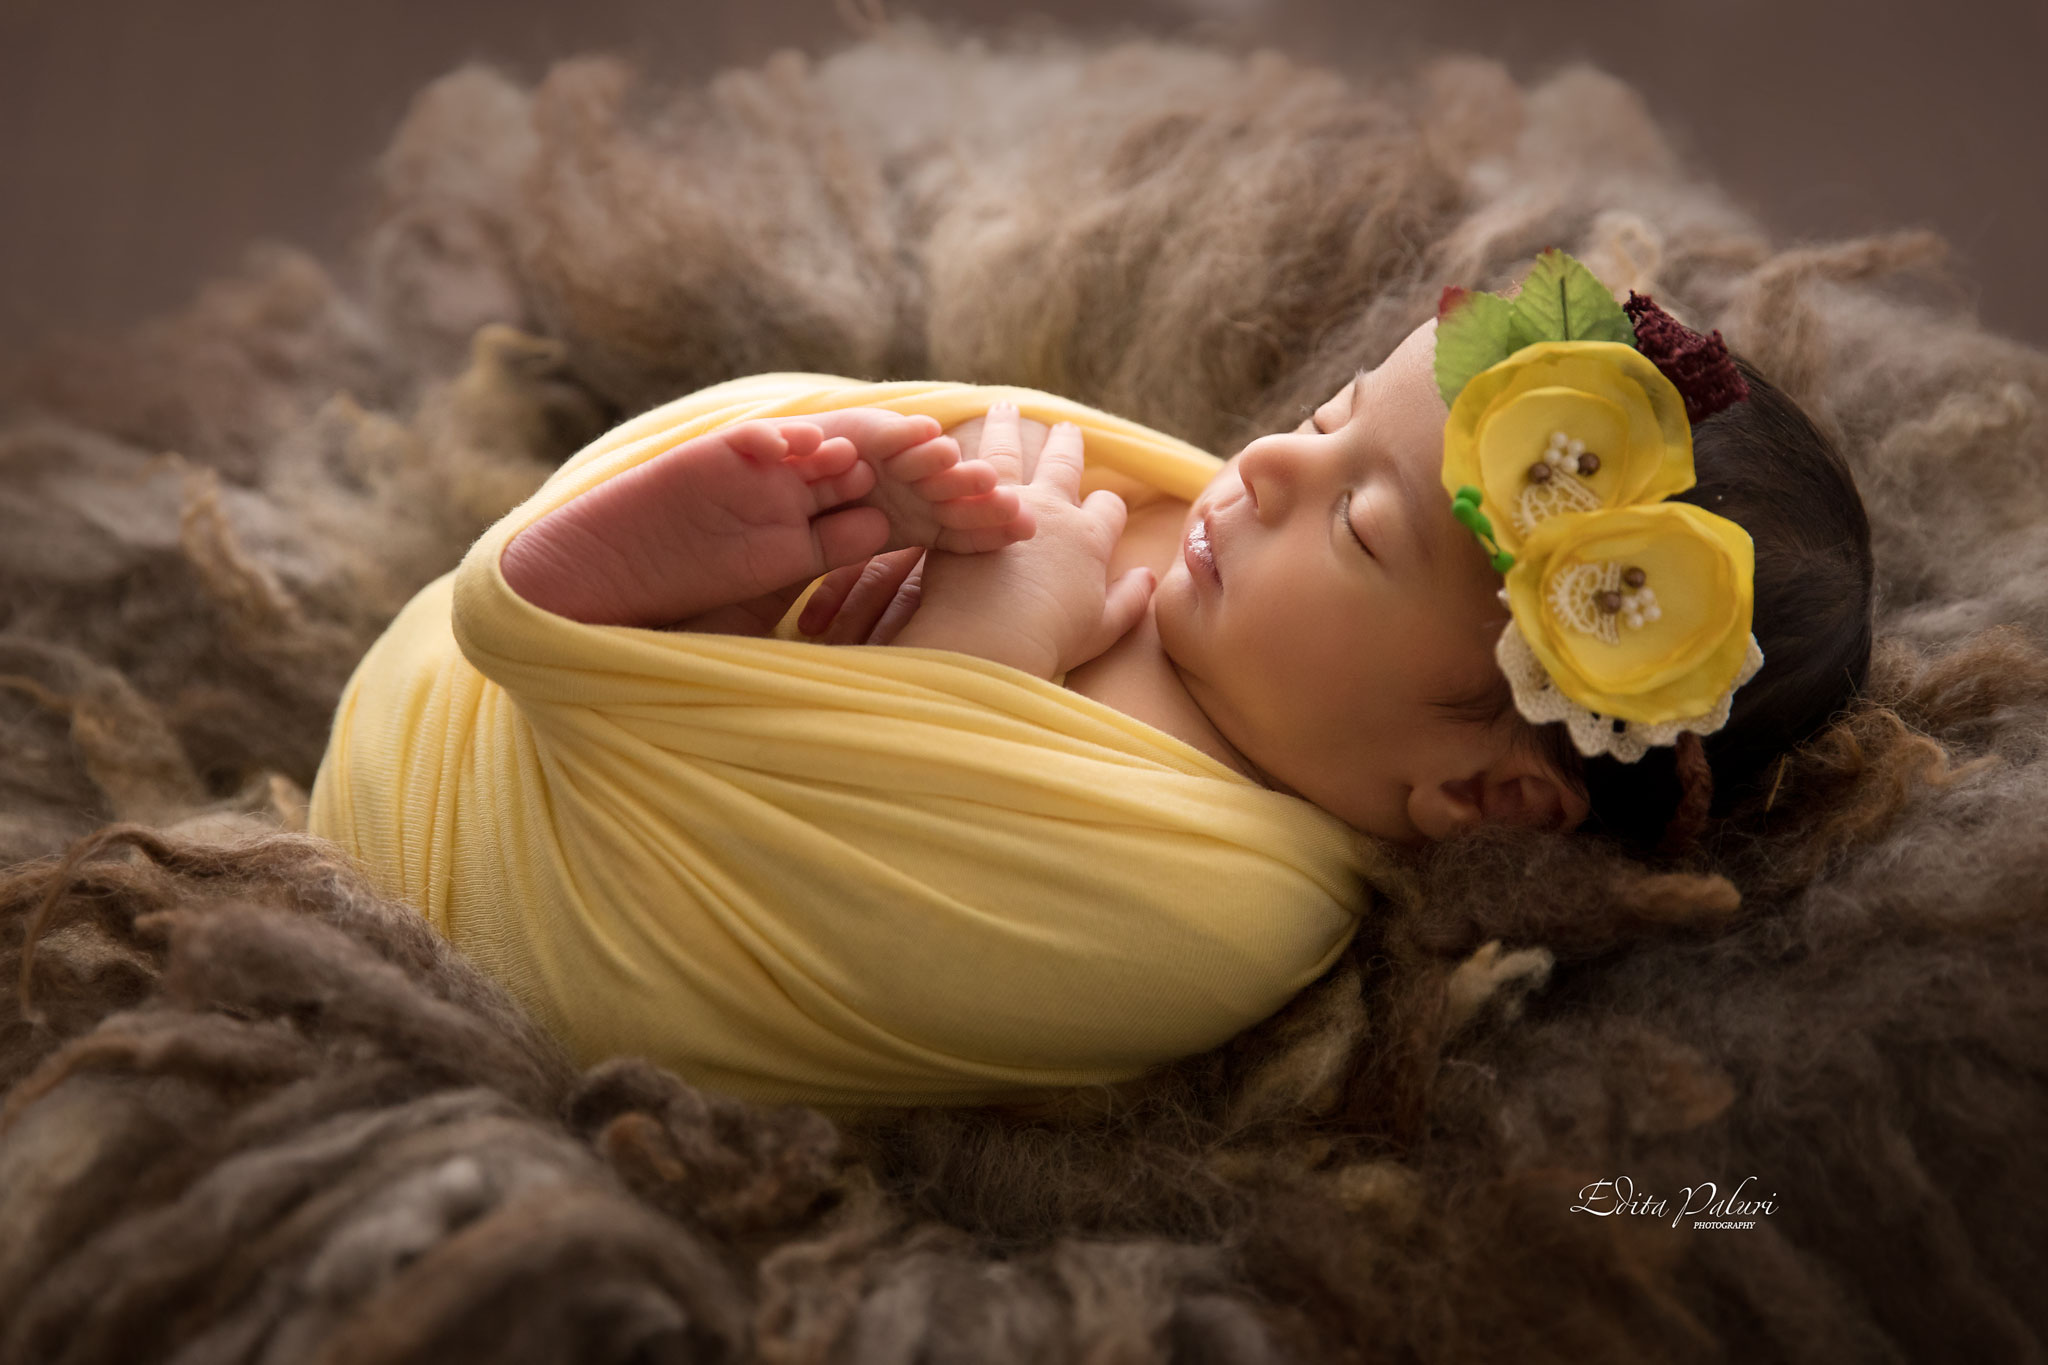 Professional Newborn photographer in Pune, India